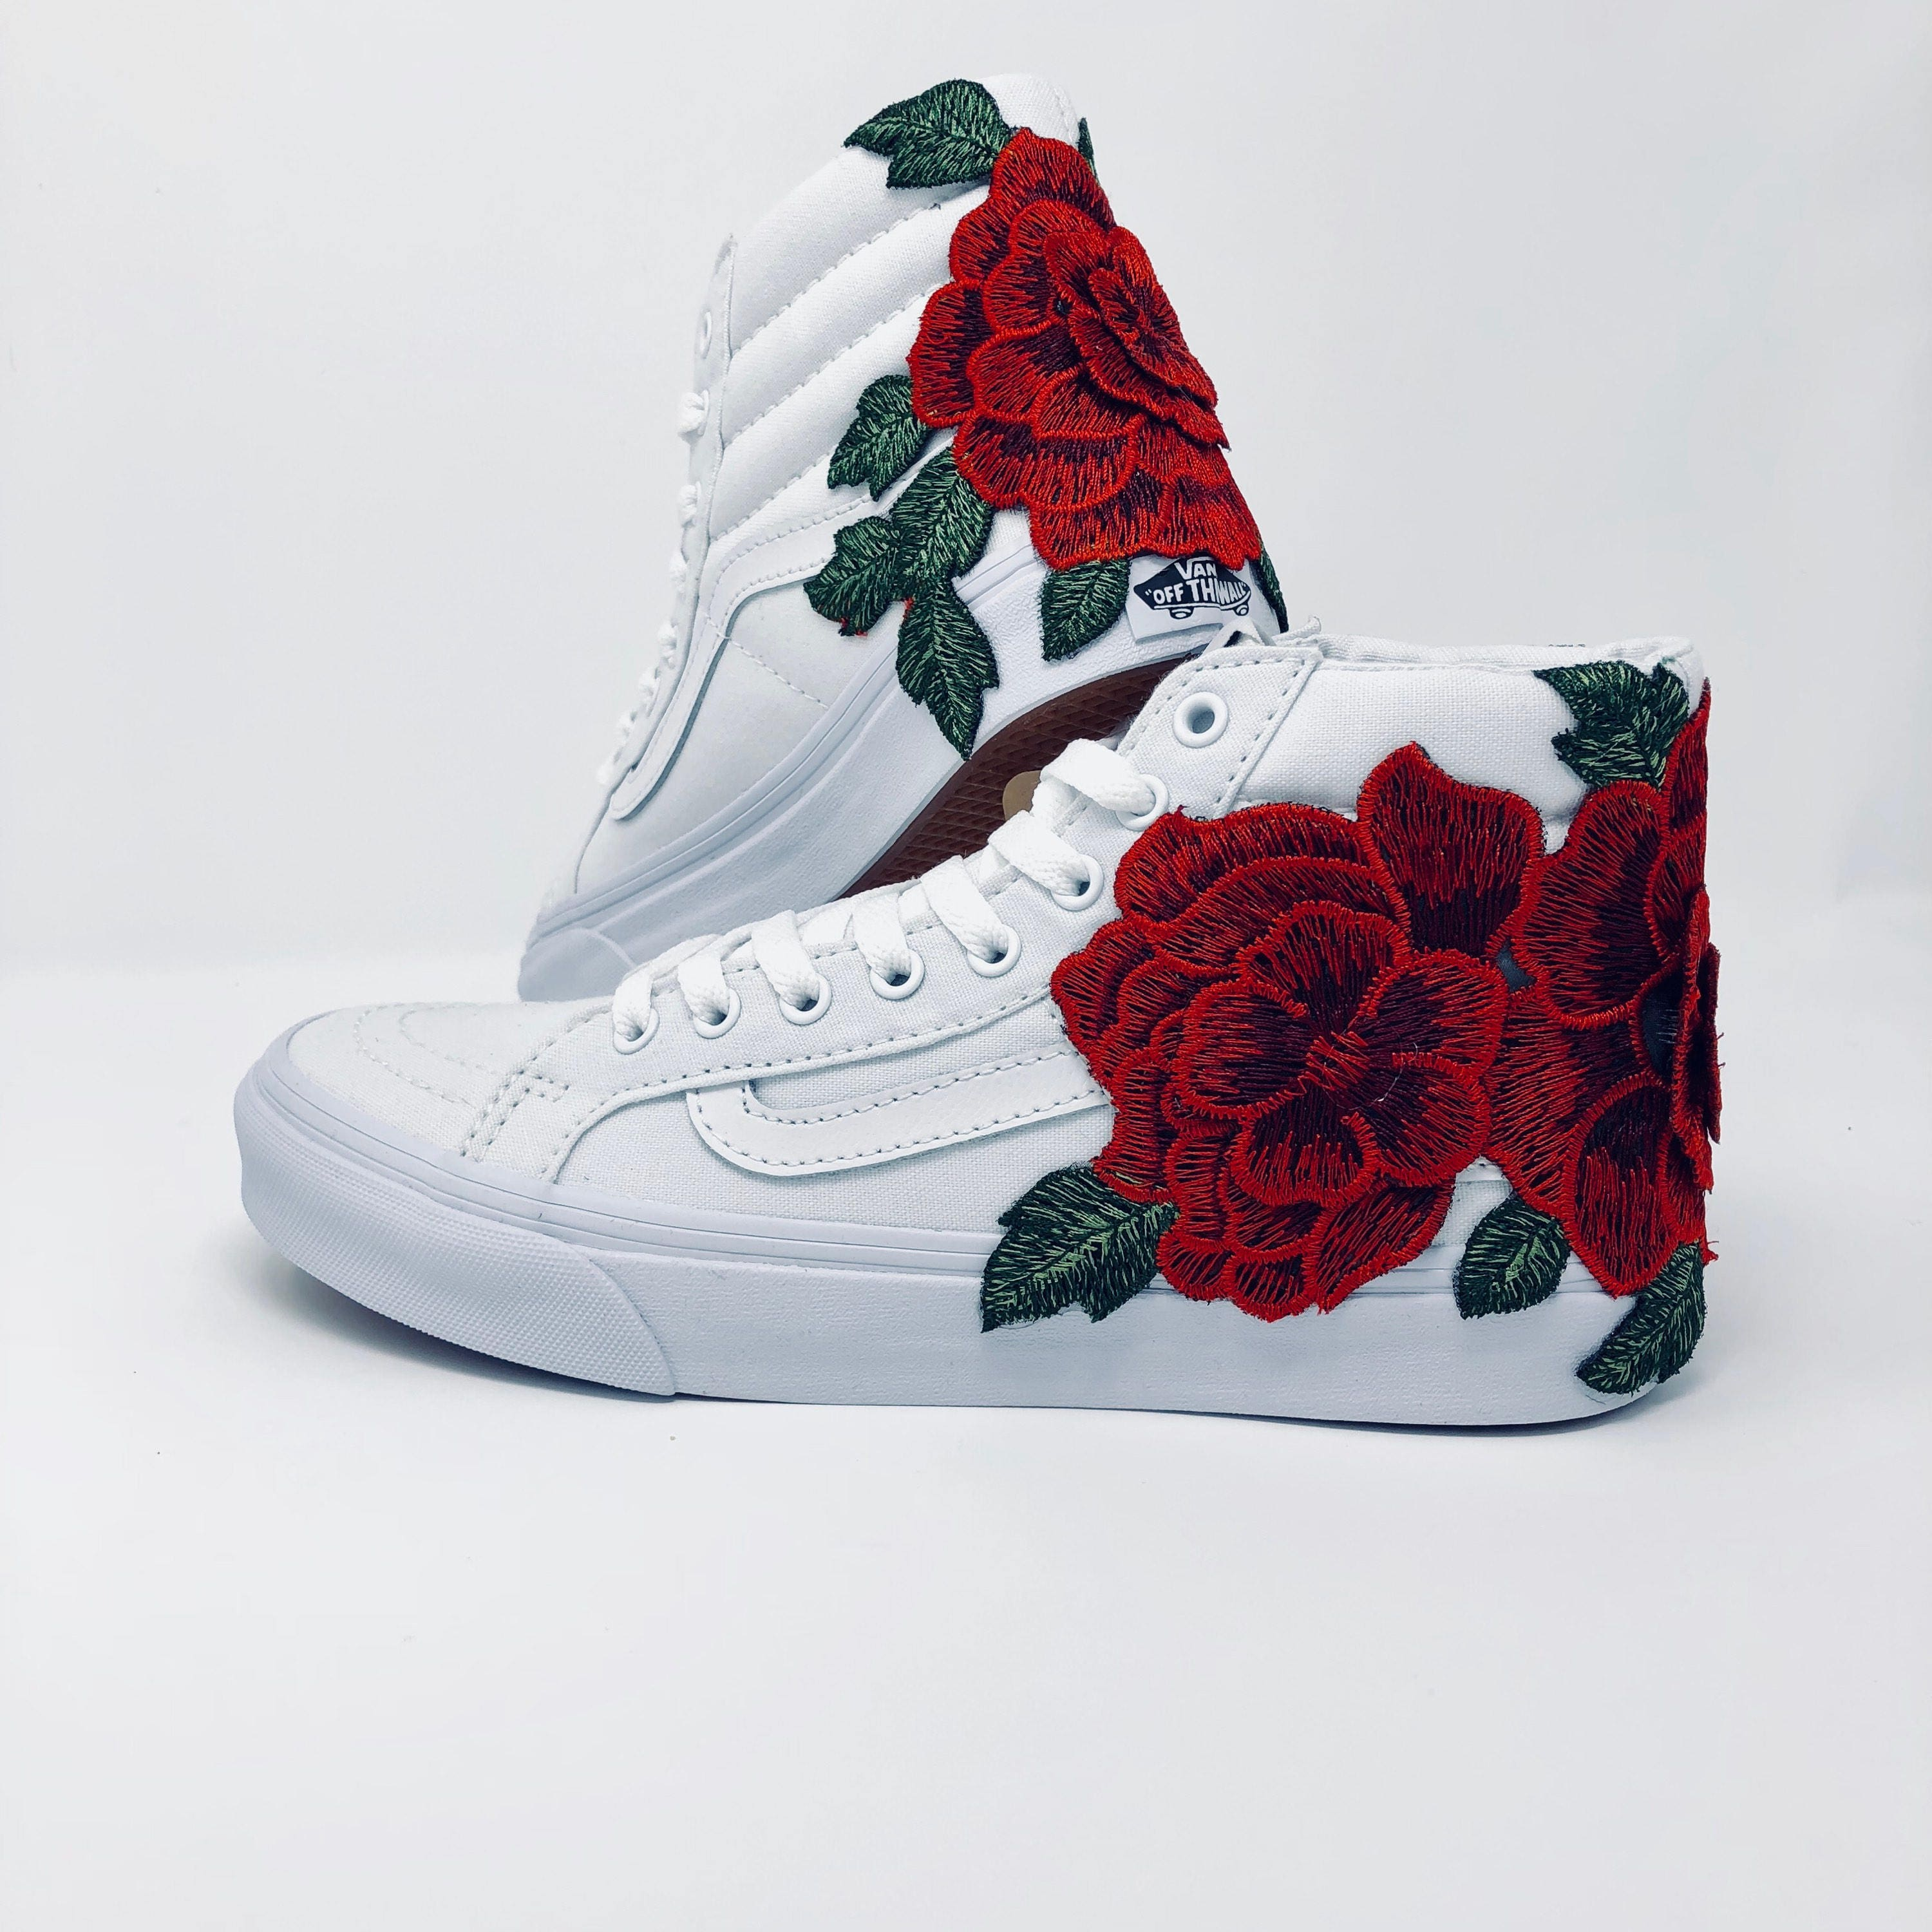 Custom Vans For Sale >> Rose Embroidered Vans floral embroidery vans roses custom